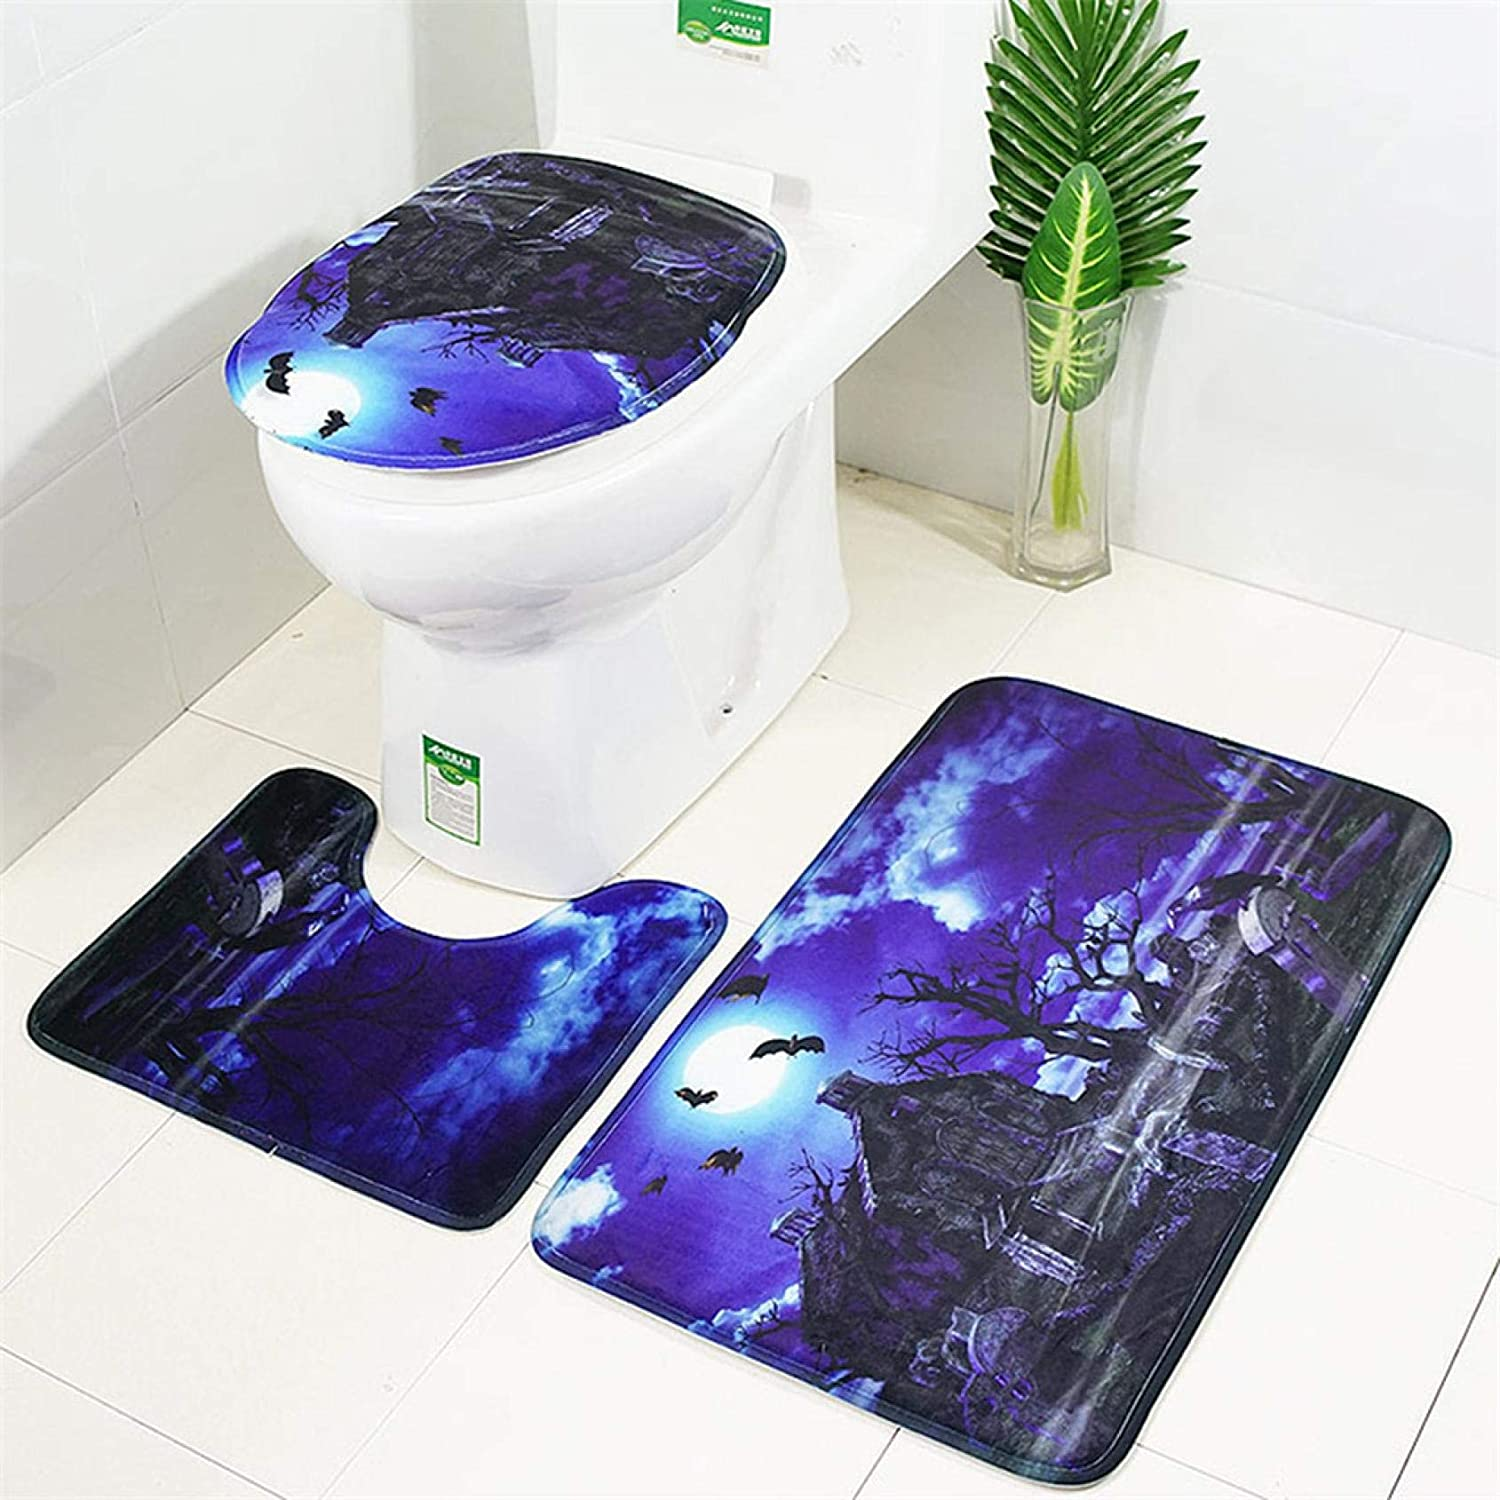 Bath Mat Toilet Lid Cover A Miayilima 3pcs Halloween Decoration Bathroom Rug Set Halloween Cat Pumpkin Bath Mat Toilet Mat Toilet Lid Cover with Non-Slip Rugs